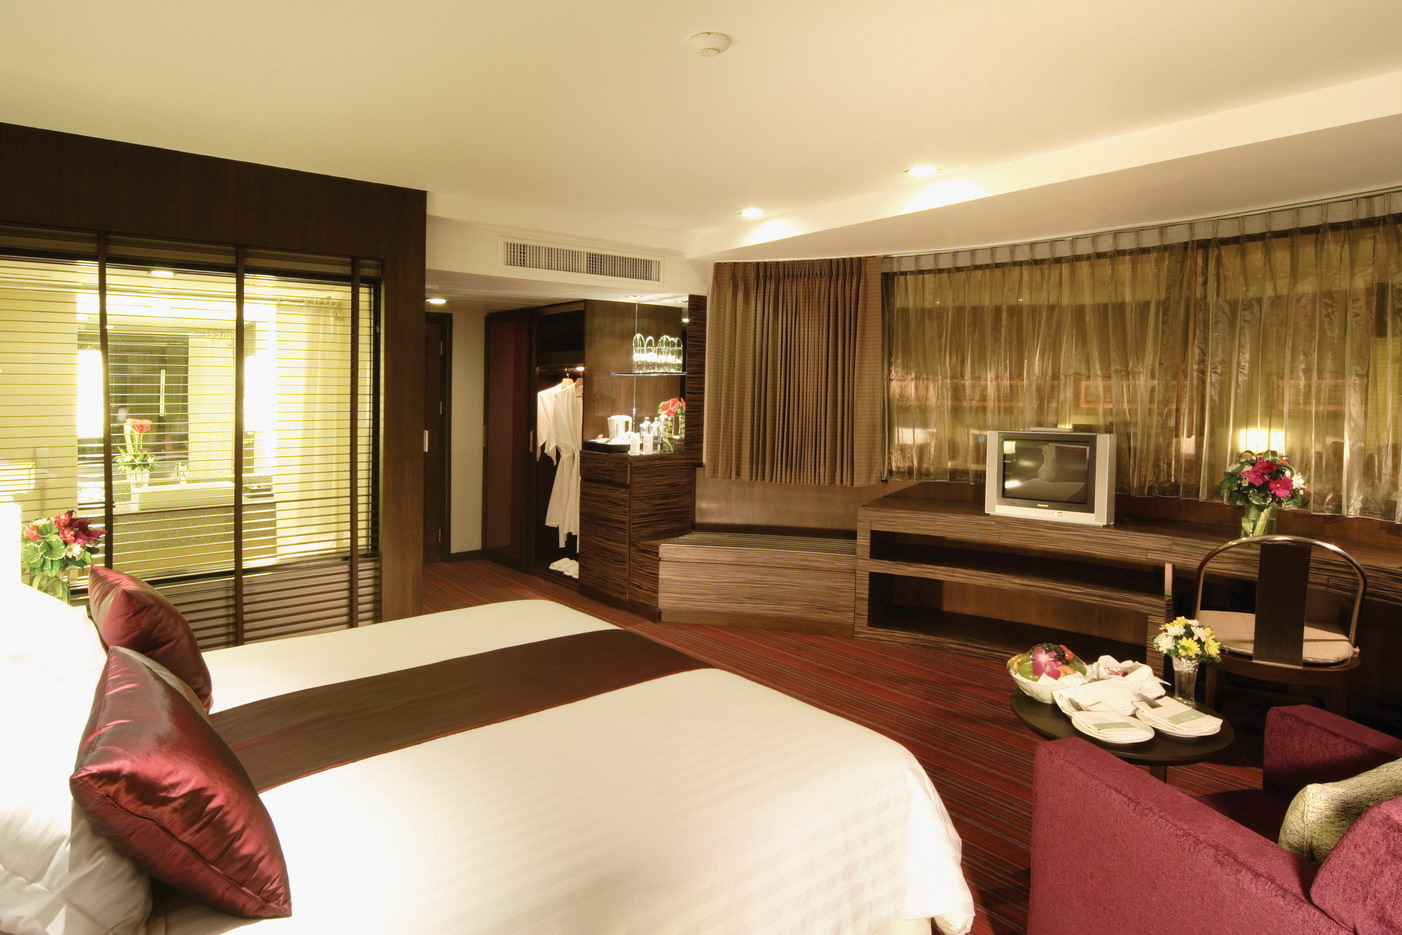 The basics of a good hotel room design Interior Design Explained